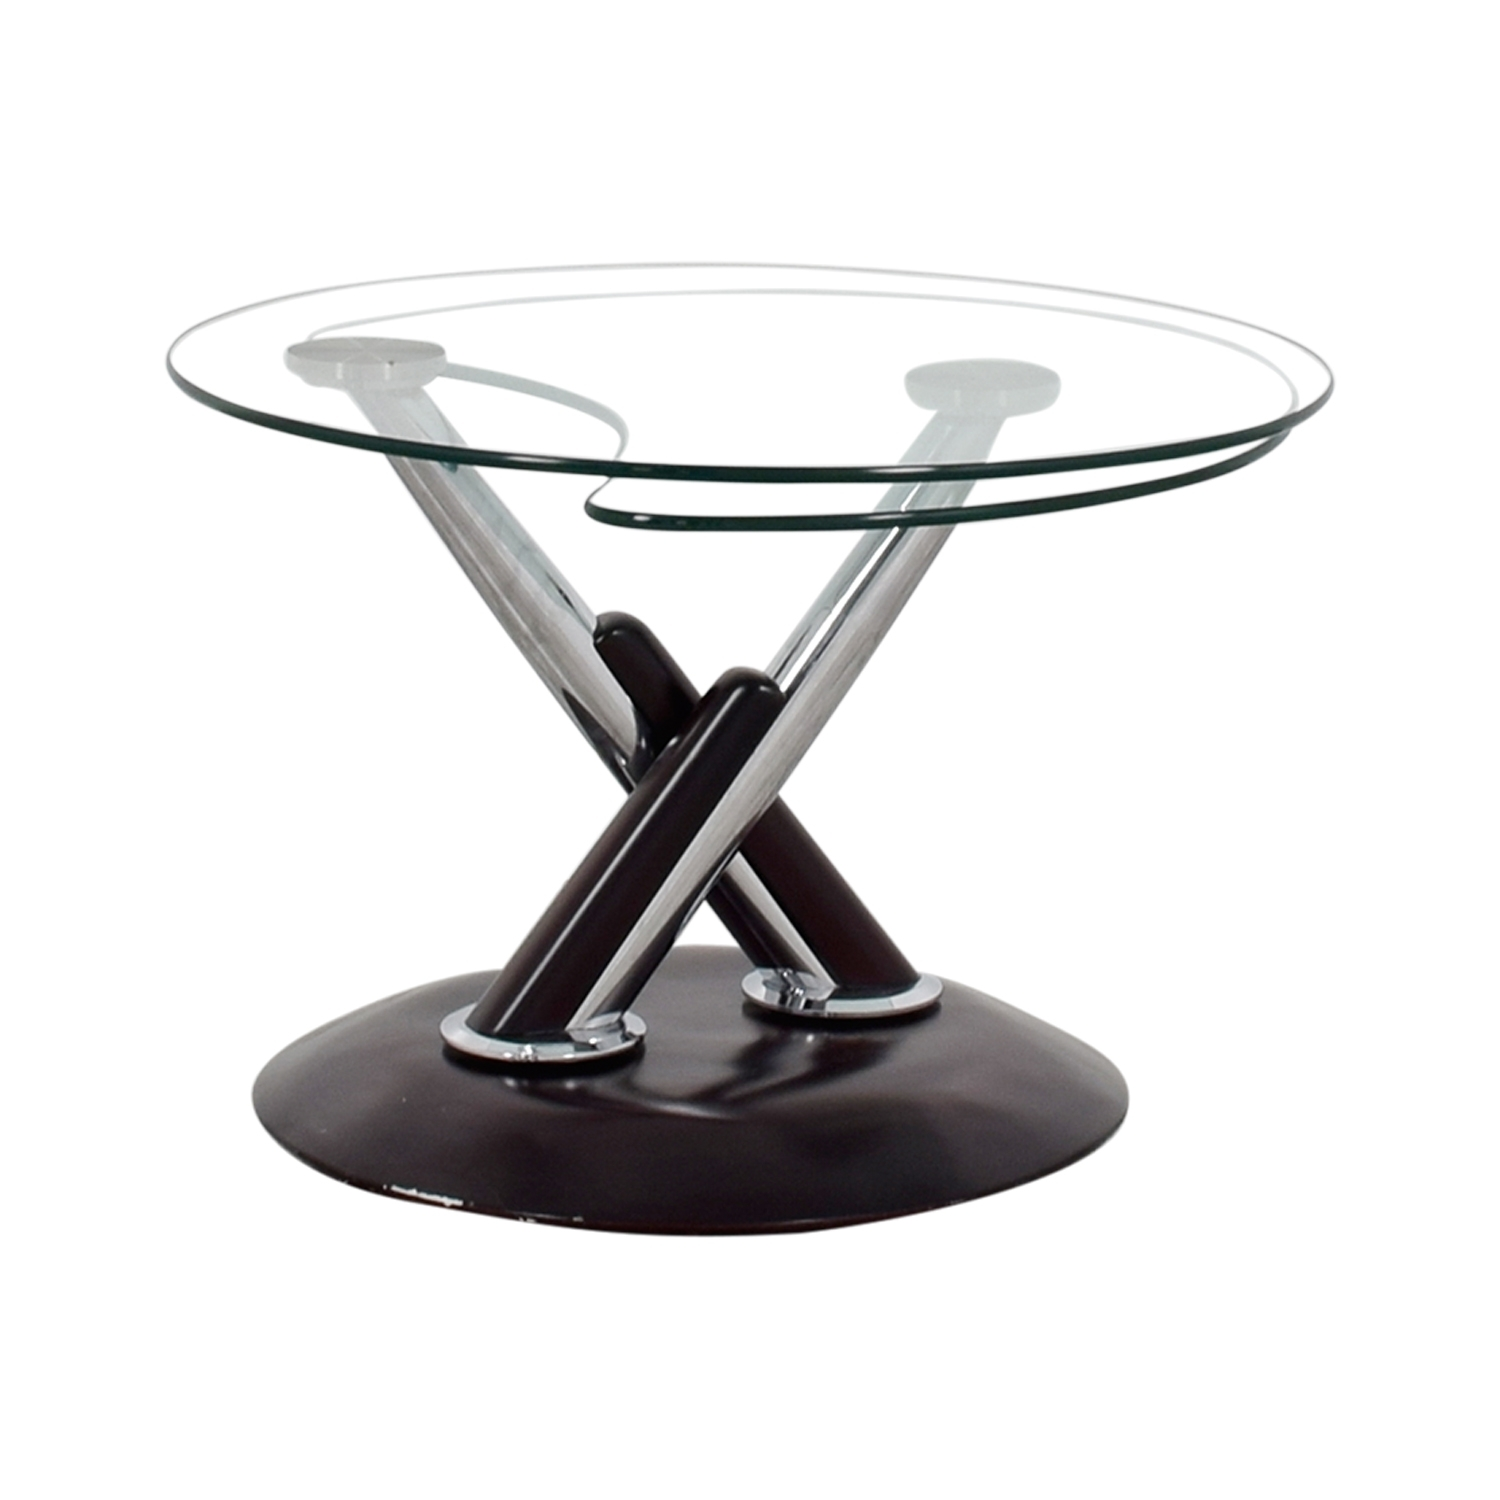 90% Off - Rotating Glass Table / Tables inside Spin Rotating Coffee Tables (Image 4 of 30)